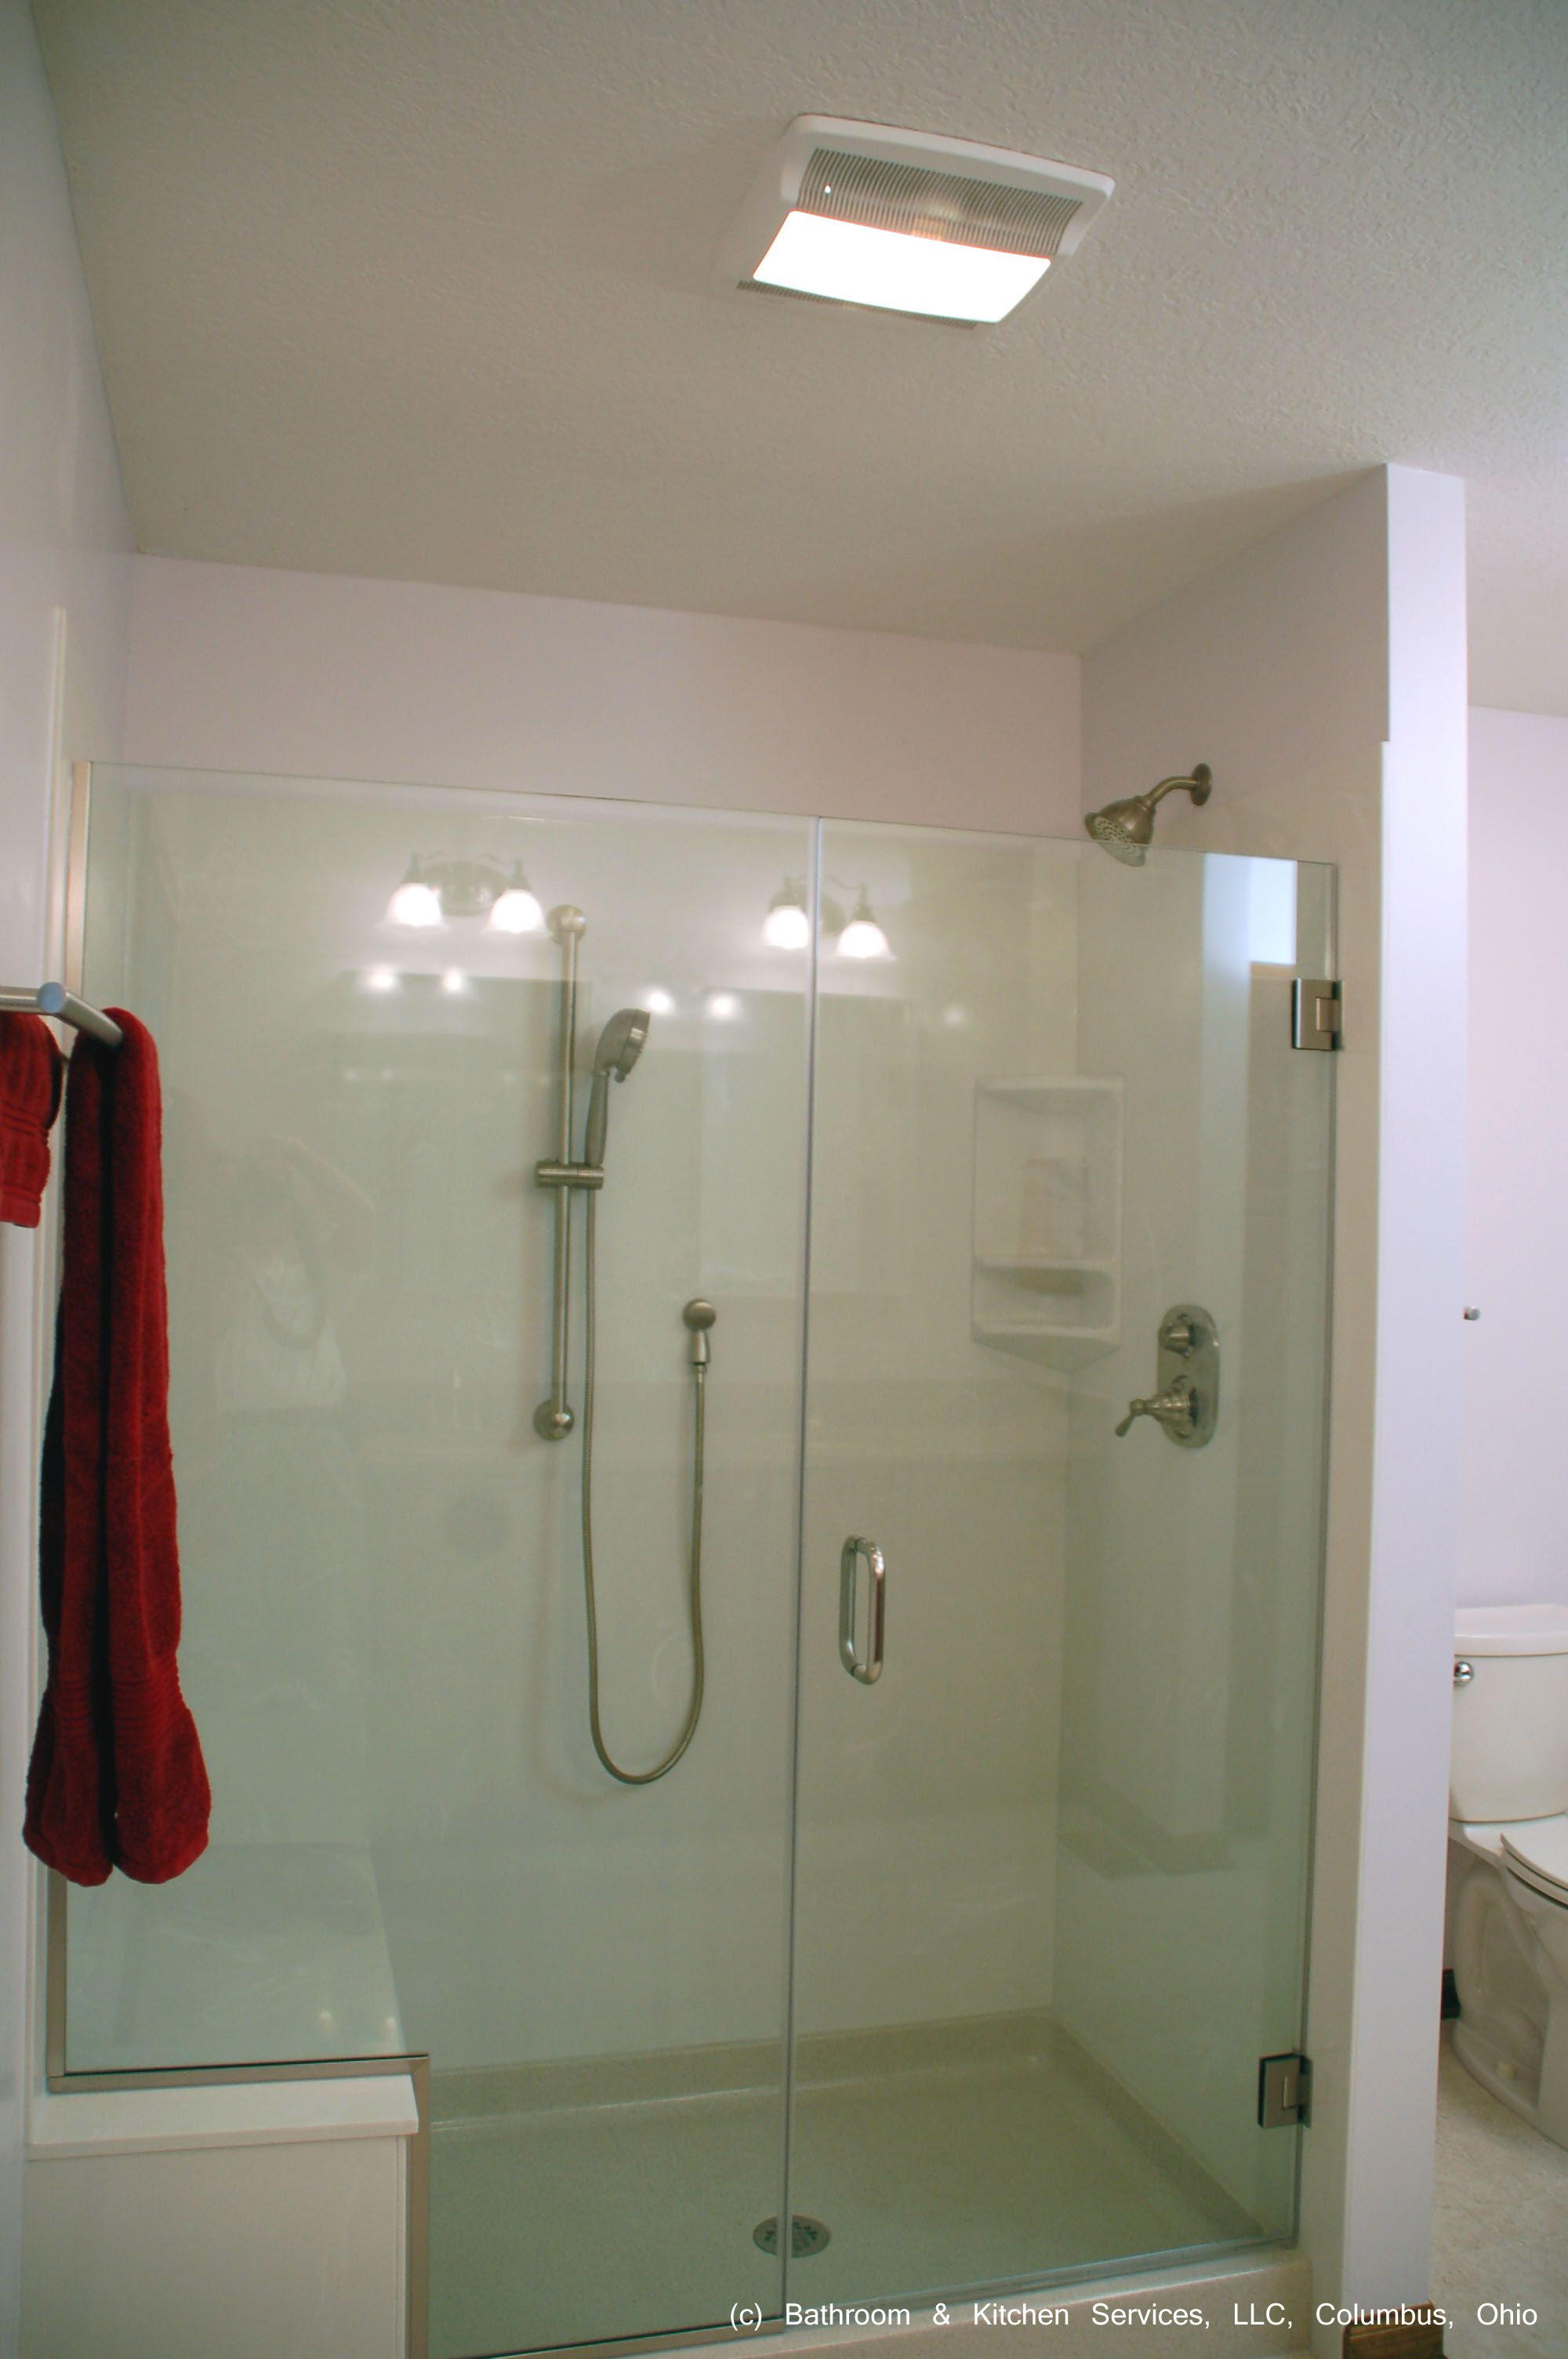 This large cultured marble shower surround with builtin seat and frameless glass shower is